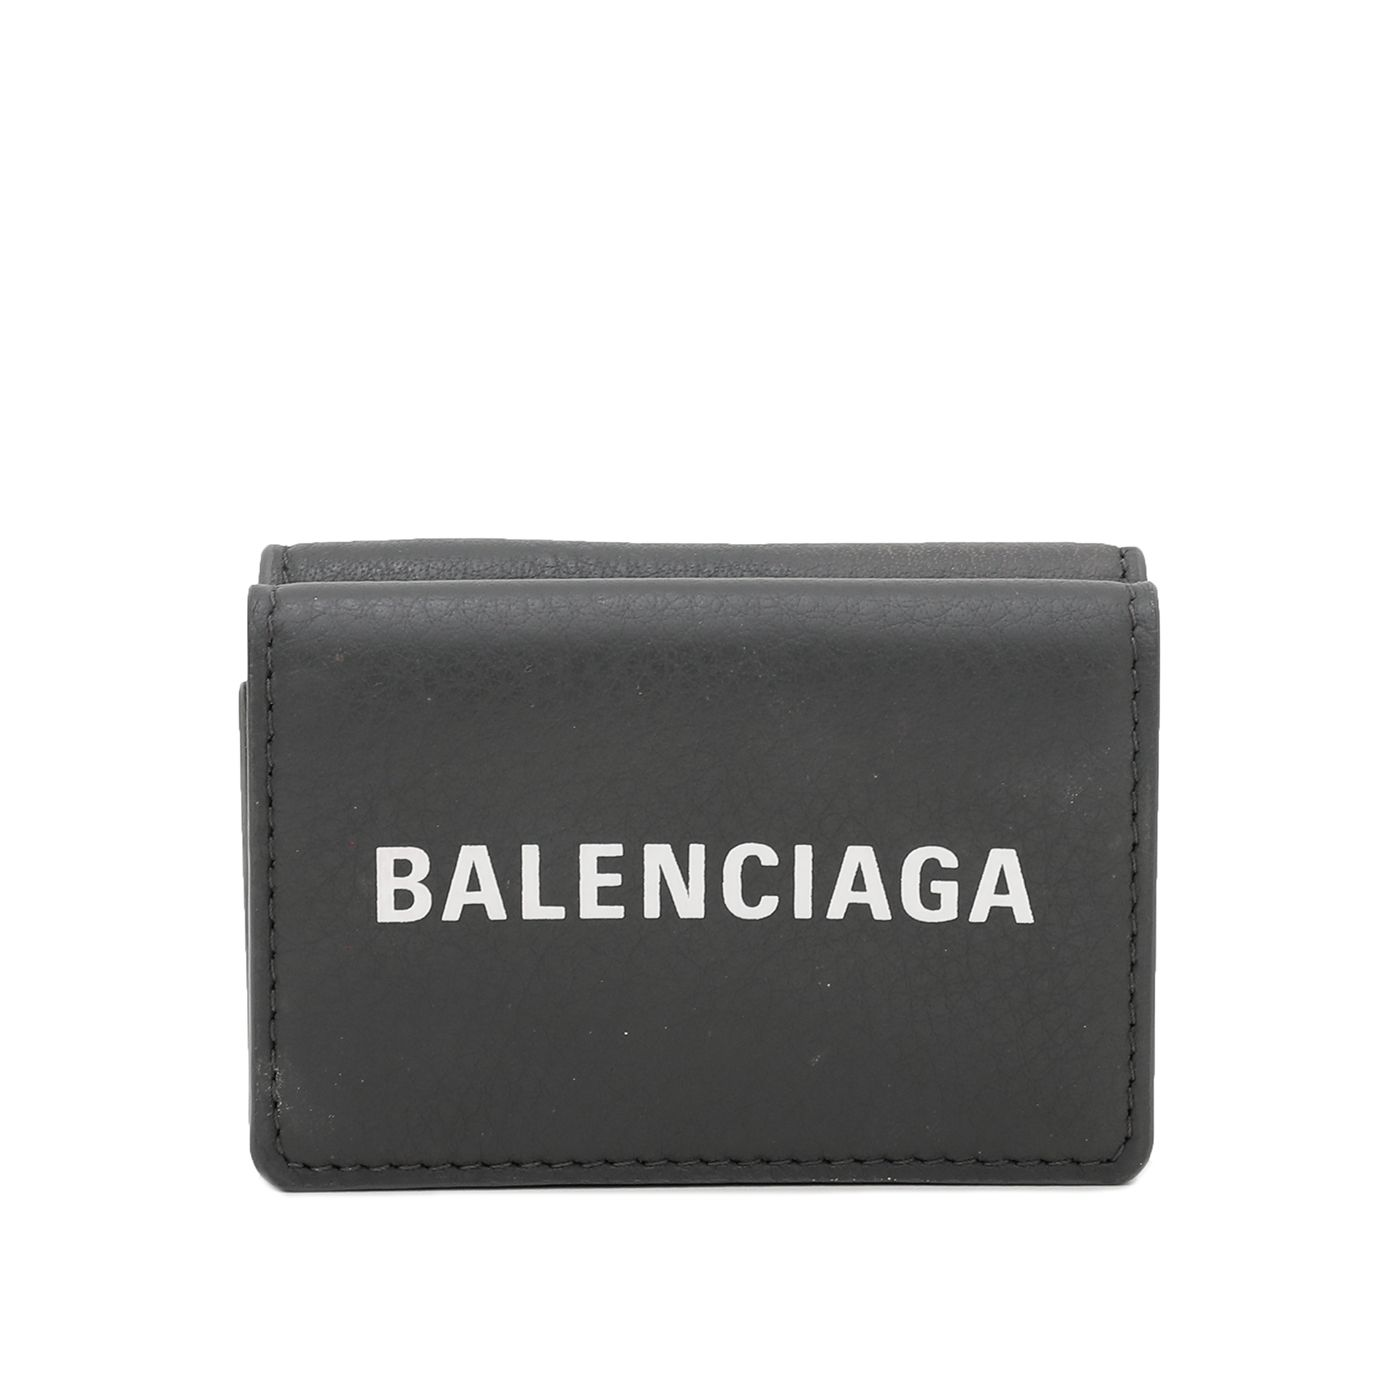 Balenciaga Gray Everyday Mini Wallet